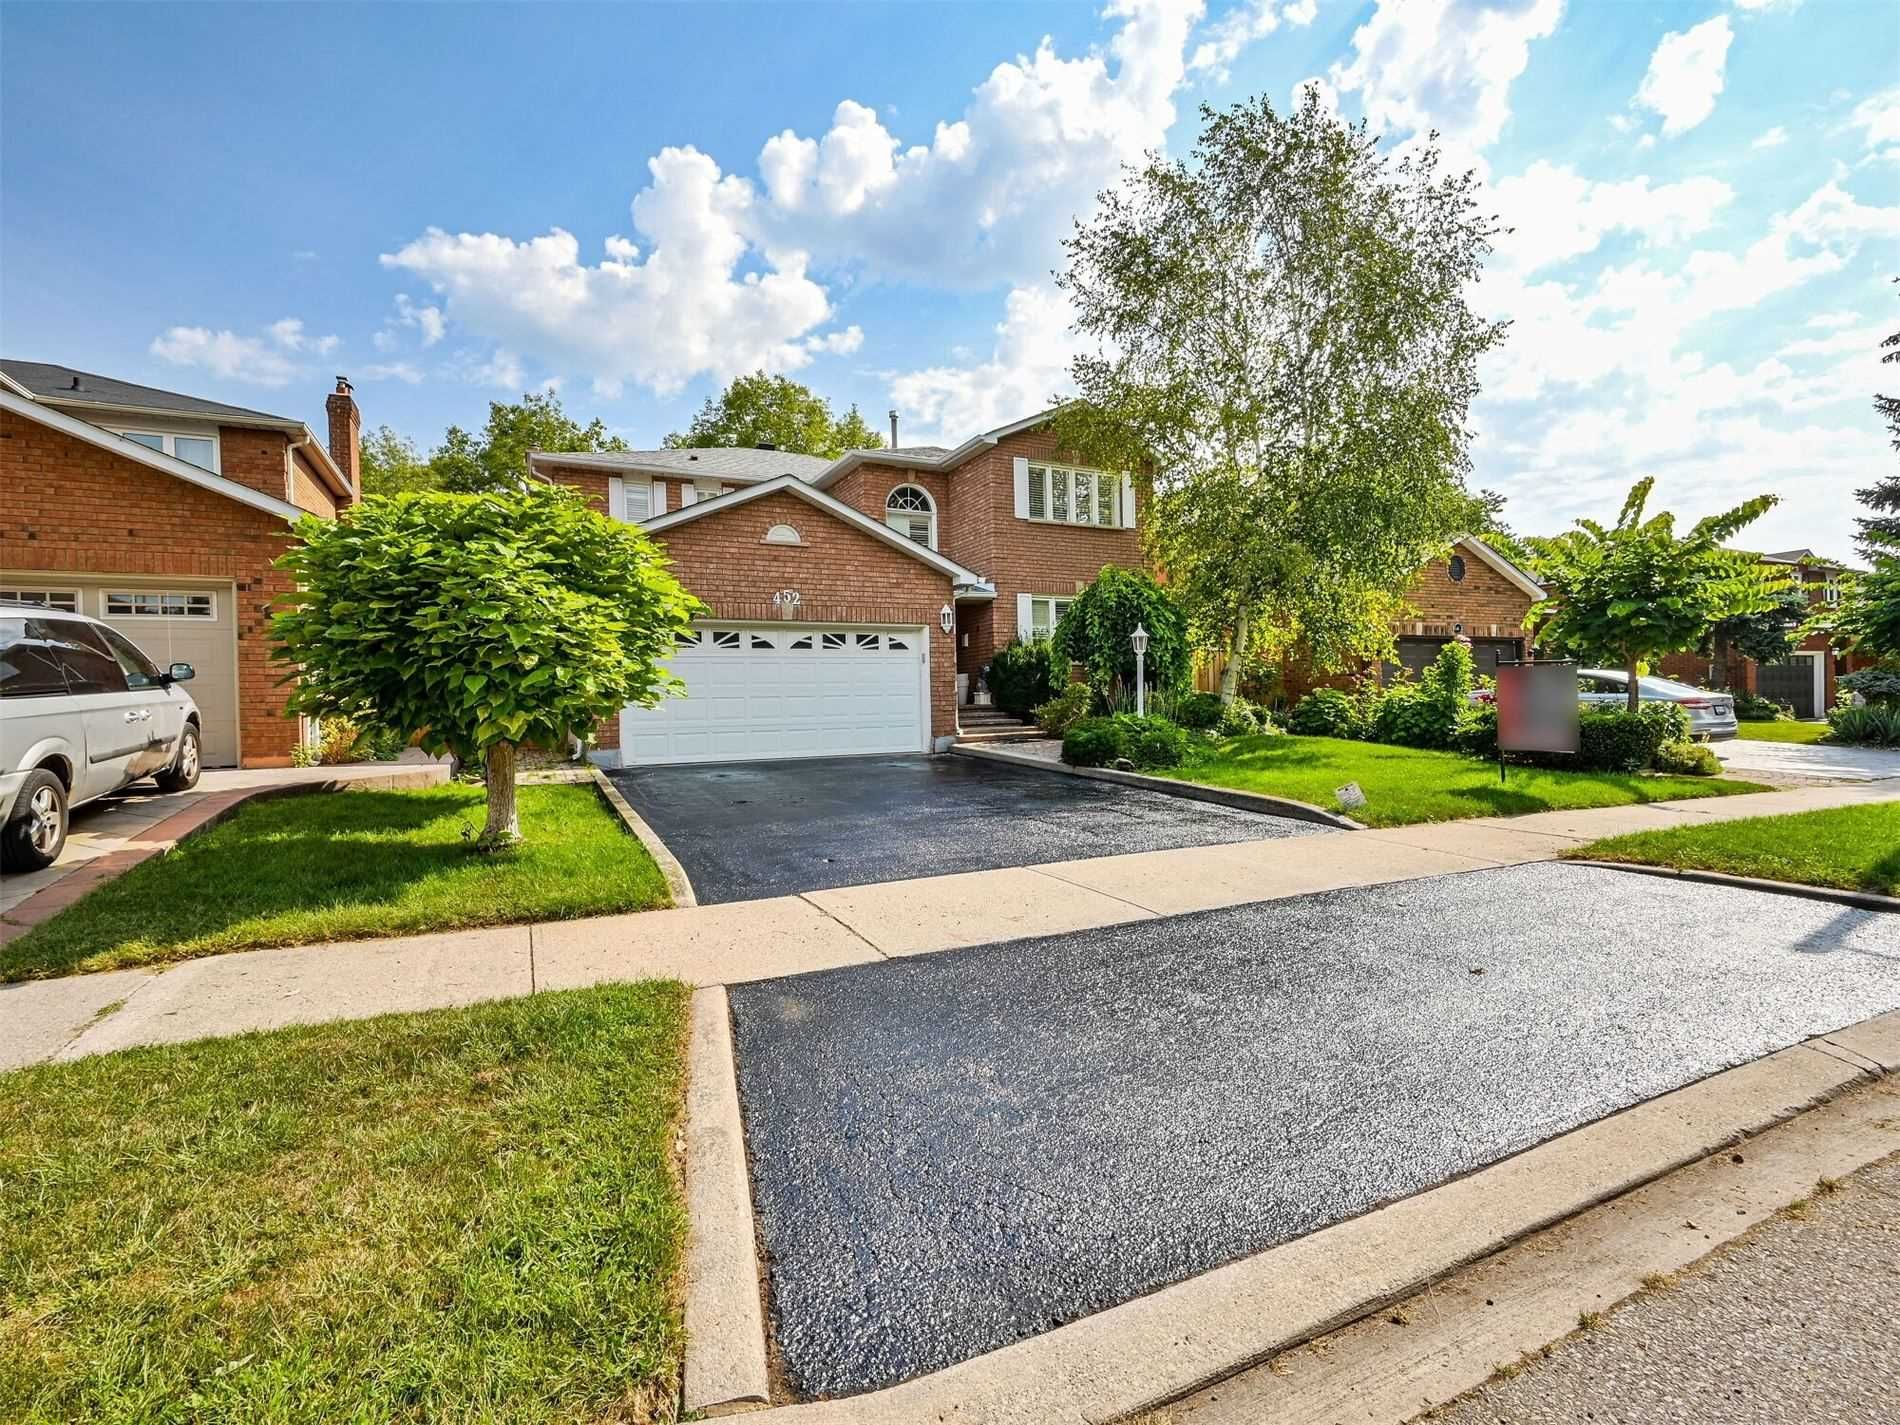 Main Photo: 452 Hedgerow Lane in Oakville: Iroquois Ridge North House (2-Storey) for sale : MLS®# W5355306